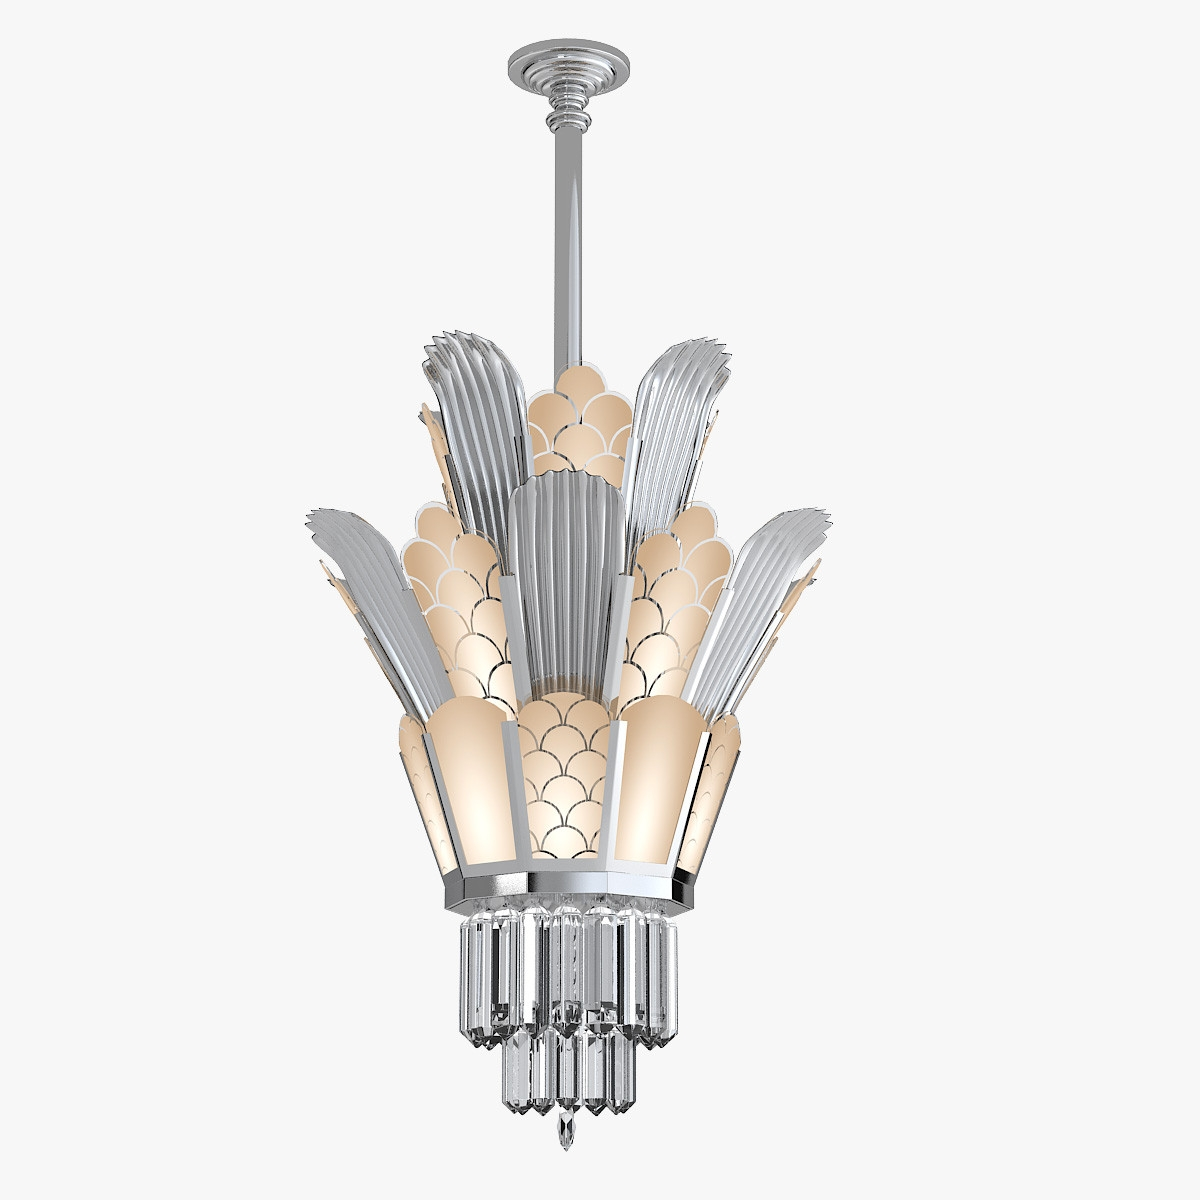 12 Best Of Large Art Deco Chandelier